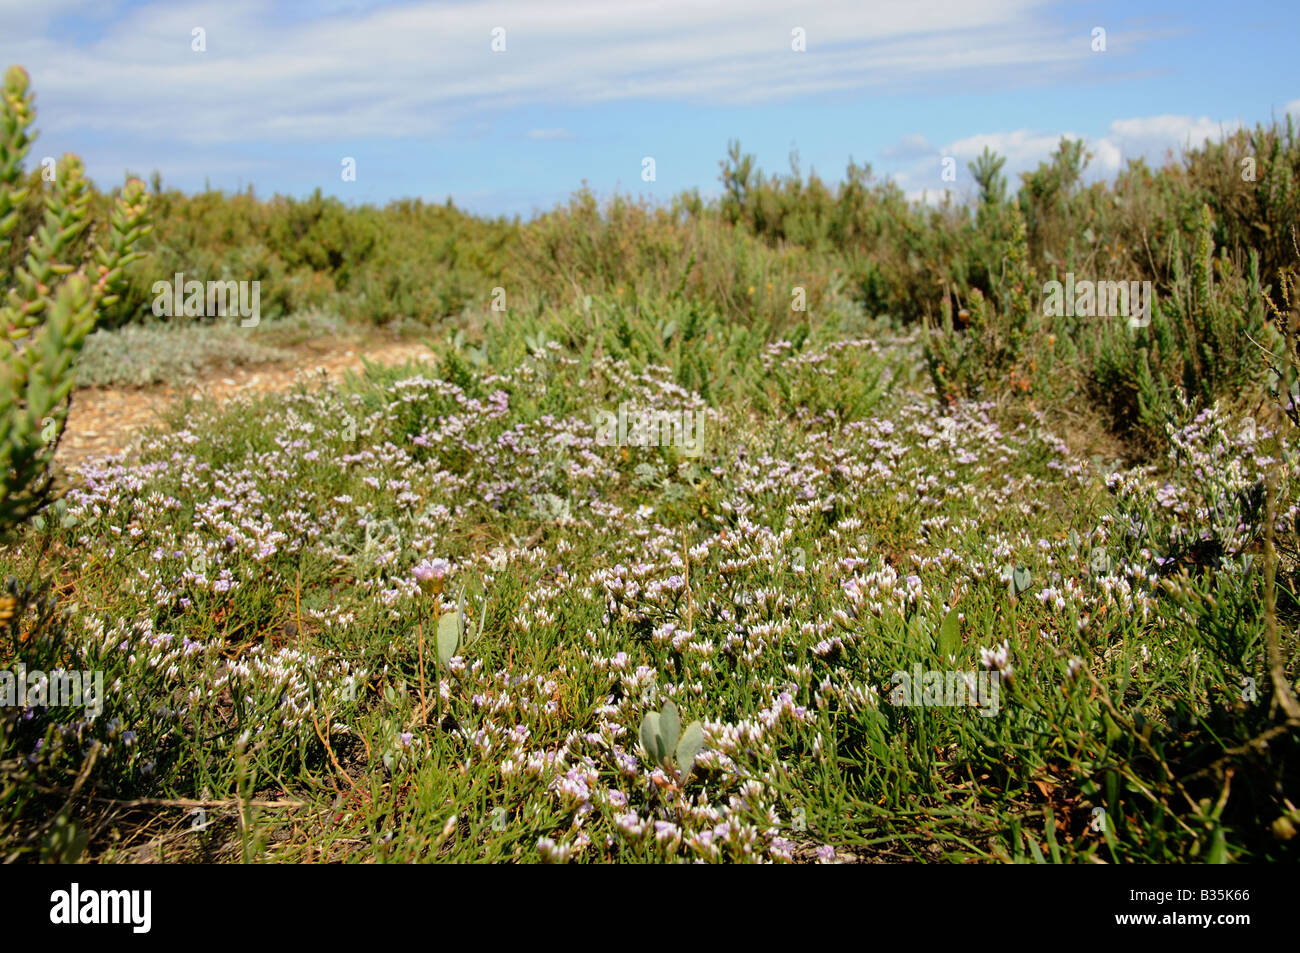 Coastal habitat showing Matted Sea Lavendar limonium bellidifolium growing amongst Suaeda fruticosa maritima - Stock Image